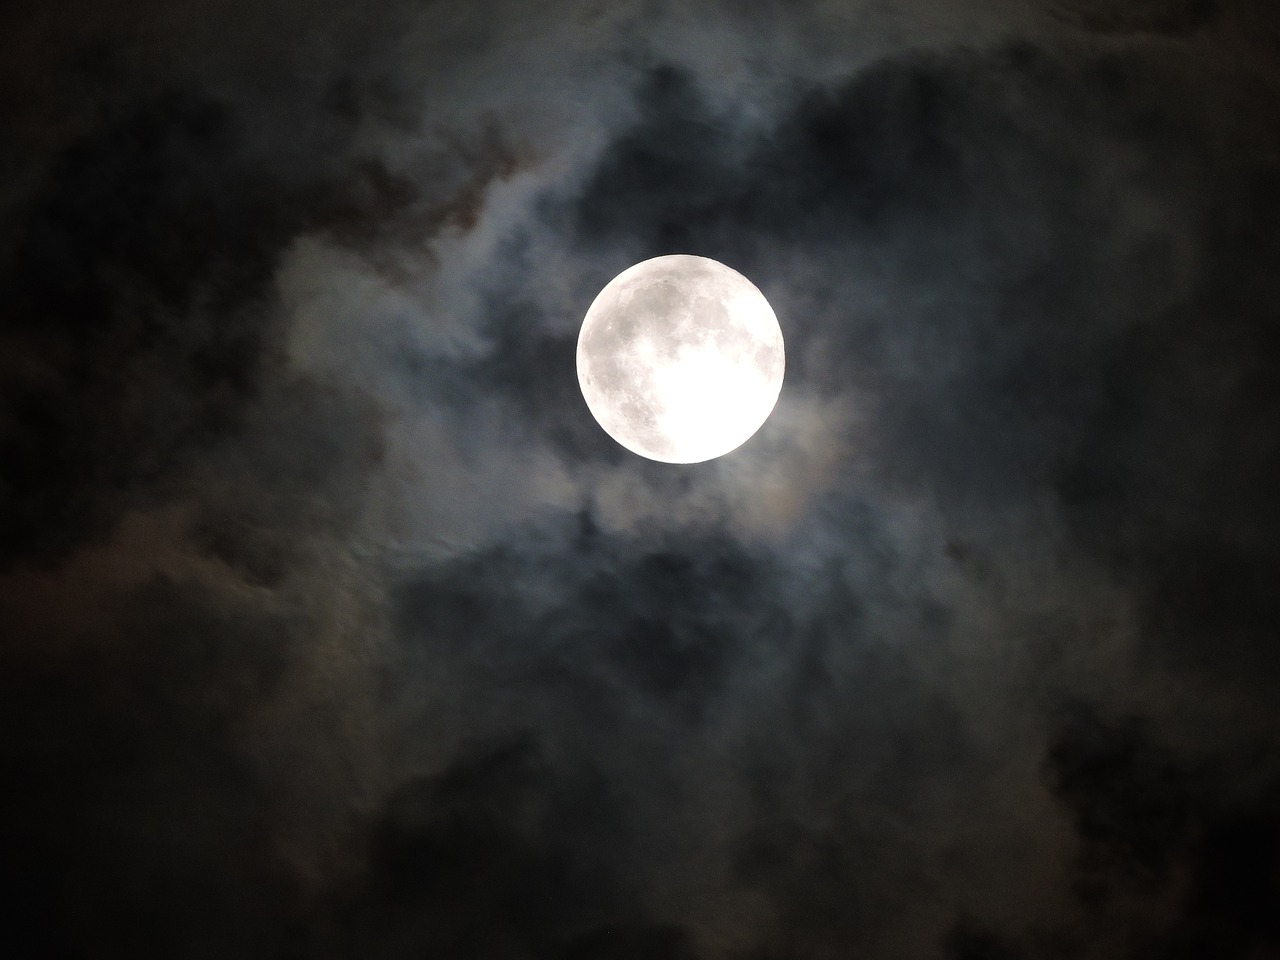 moonlight moon spooky free photo